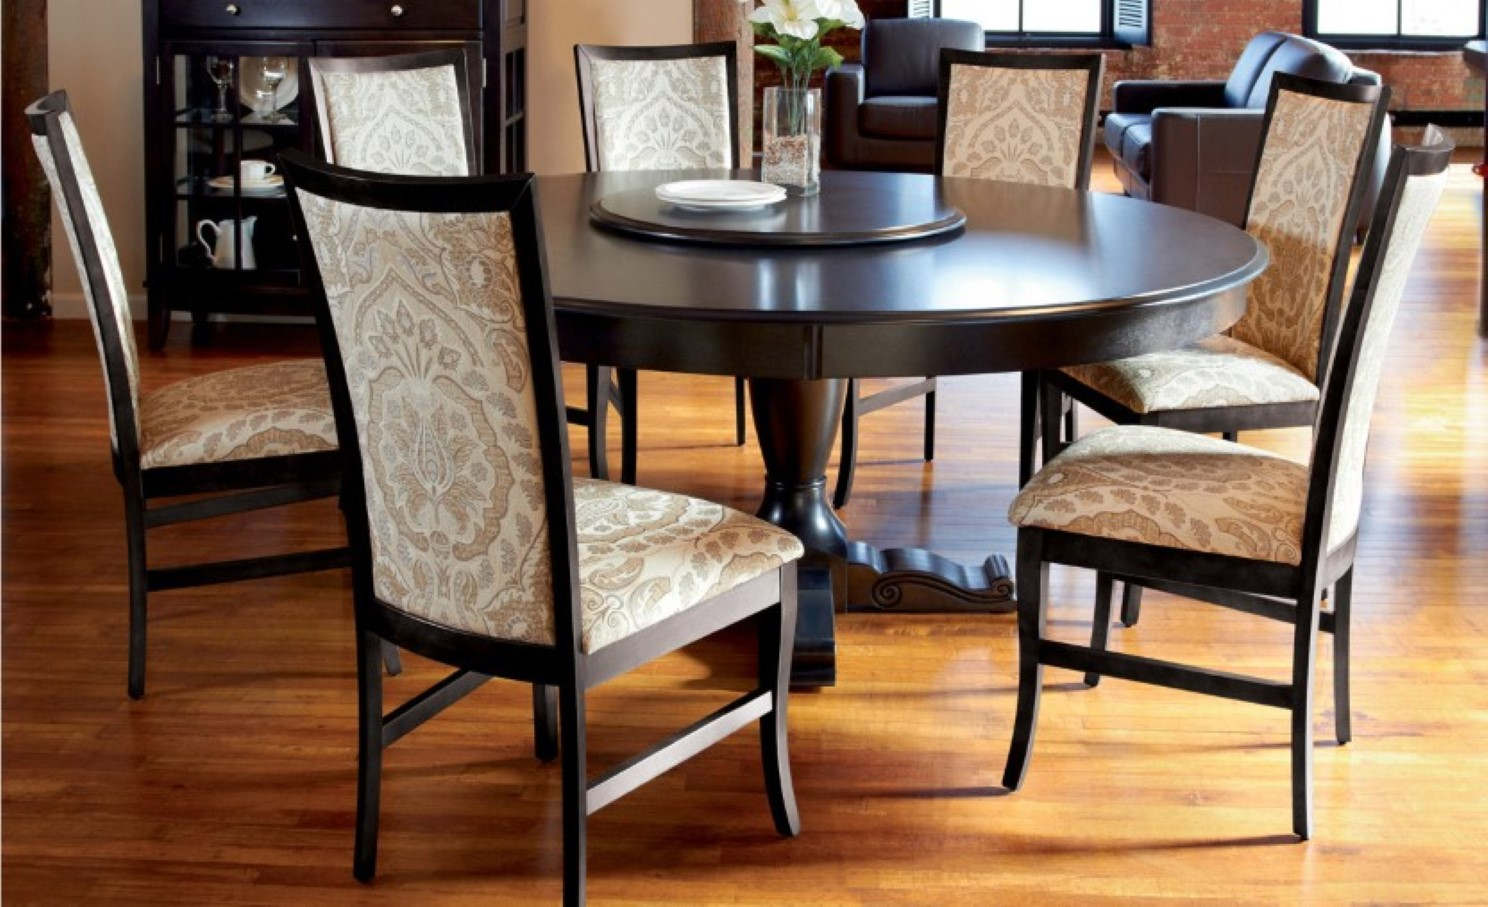 Round Dining Table Set With Leaf HomesFeed - Round pedestal dining table set with leaf